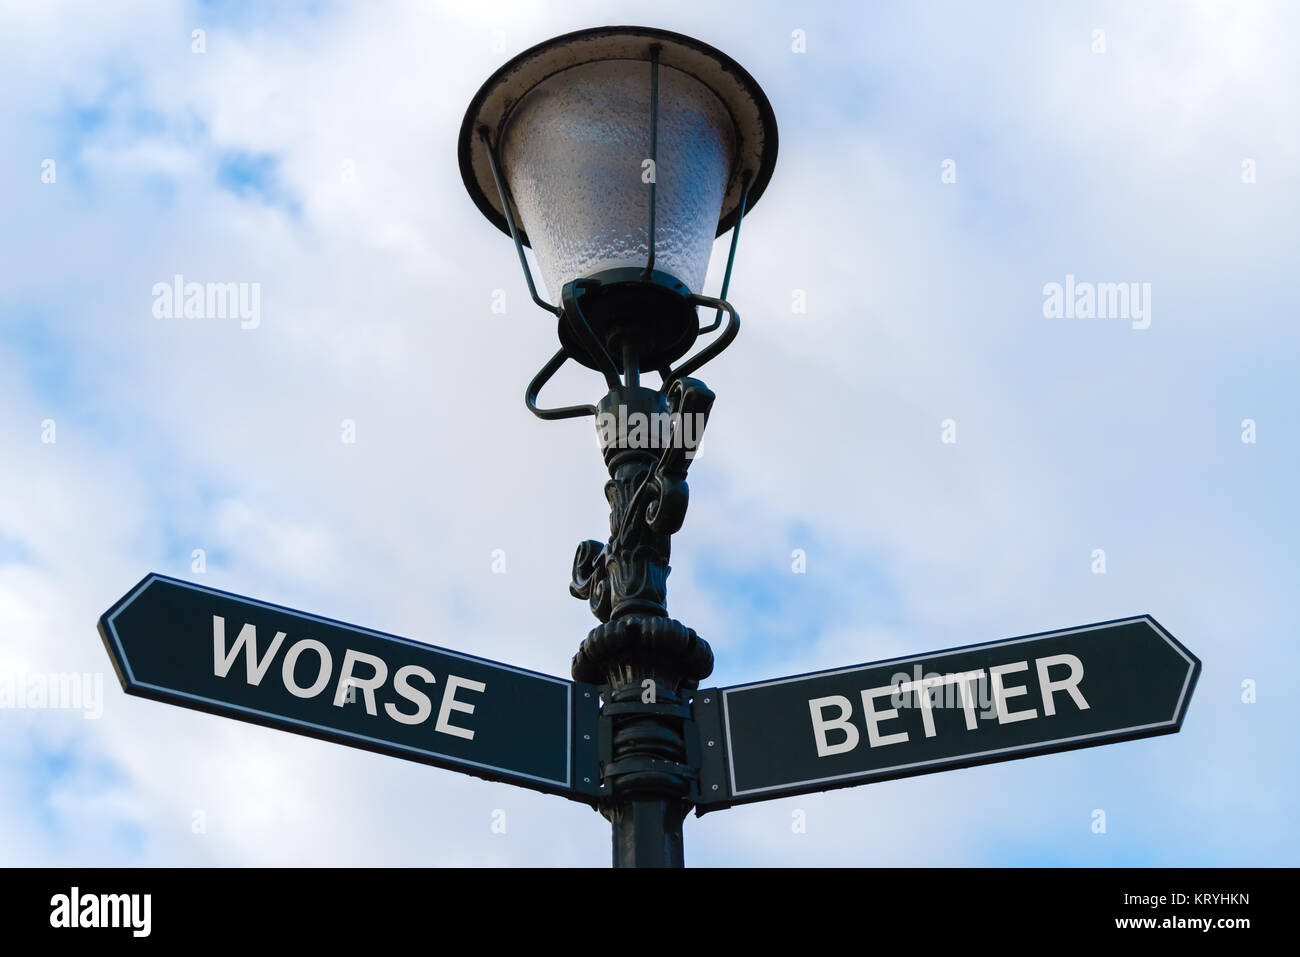 Worse versus Better directional signs on guidepost Stock Photo